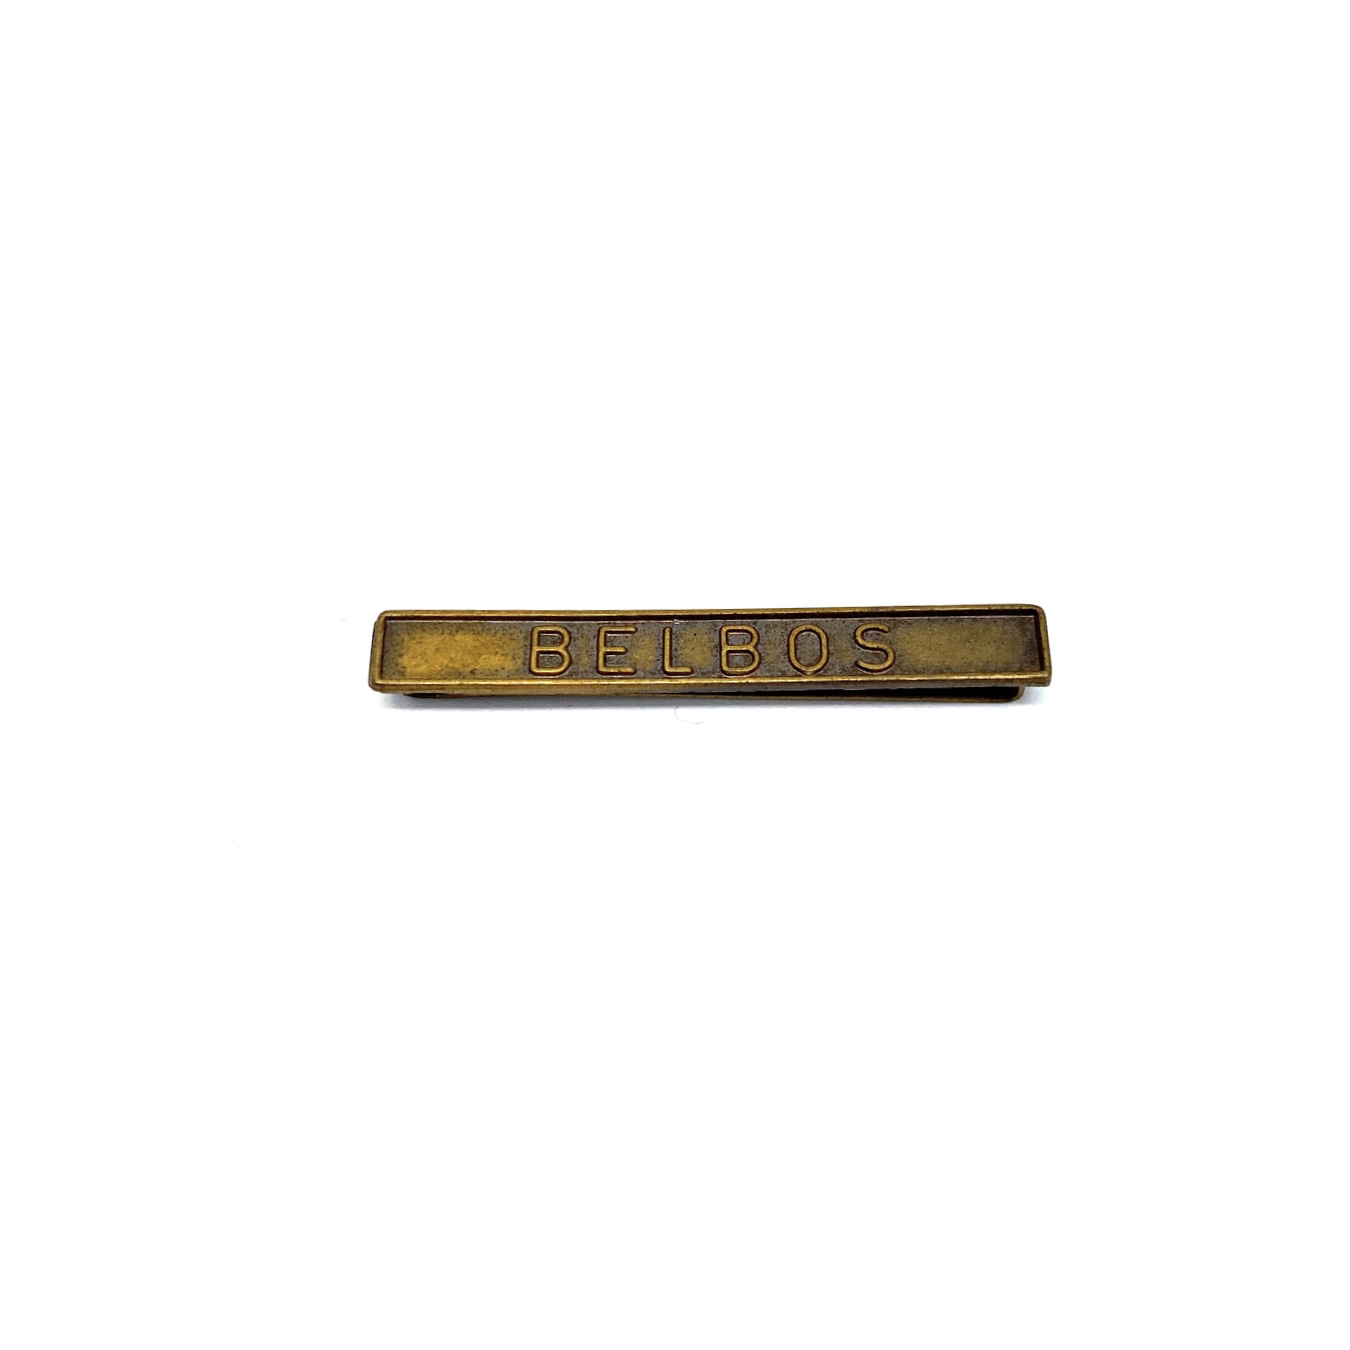 Bar BELBOS for military medals